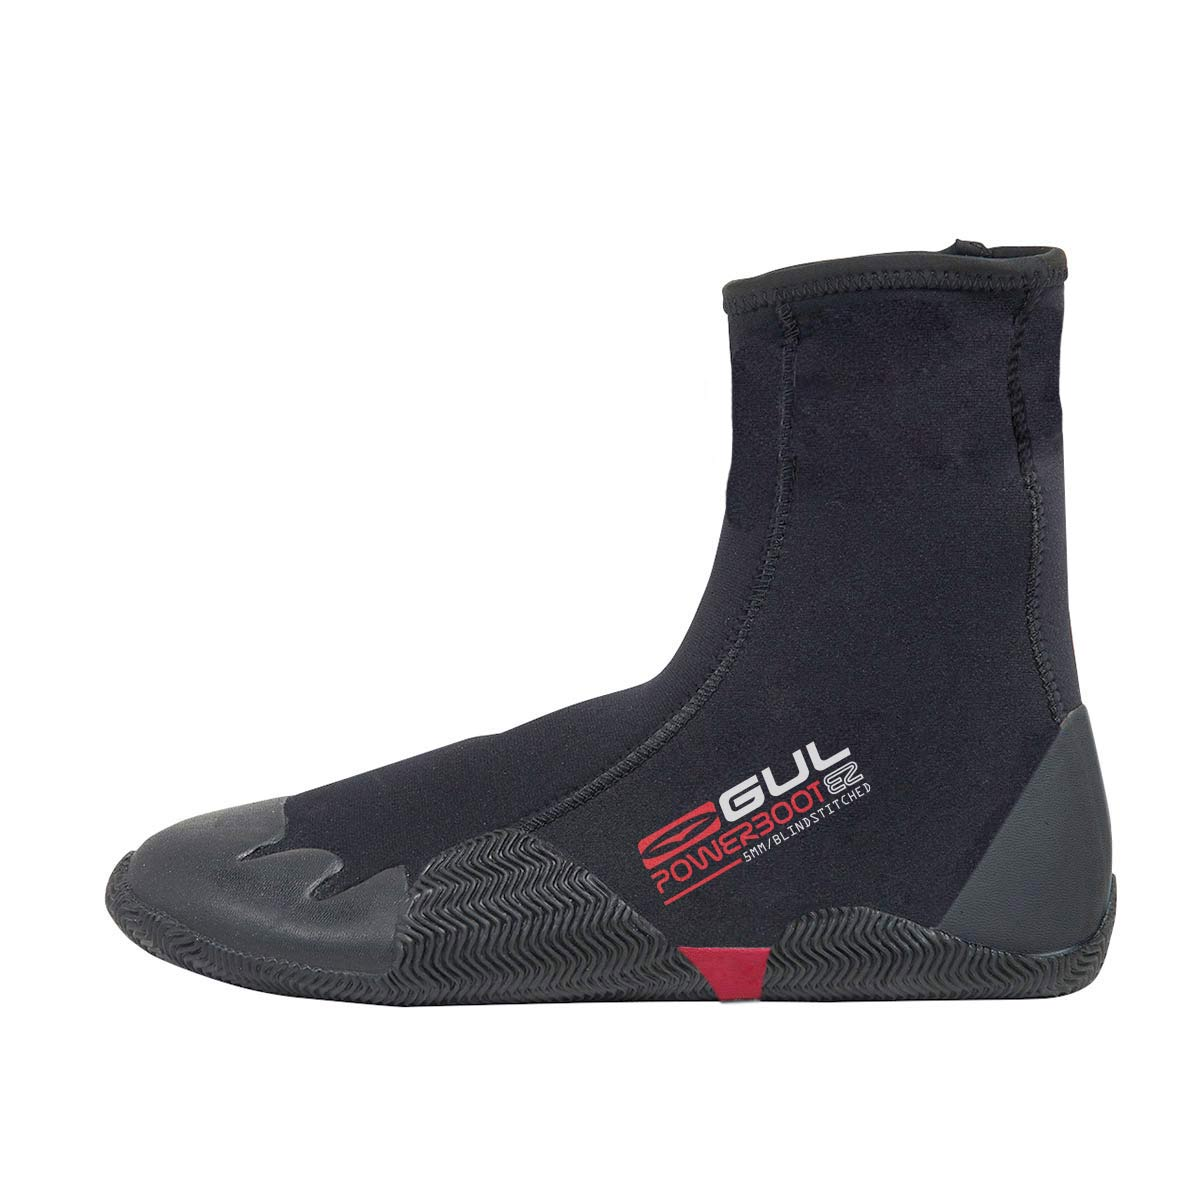 Gul - 2018 - Power Boot - 5mm - Men's Round Toe Zipped Wetsuit Boot - B01306-B2BKBK